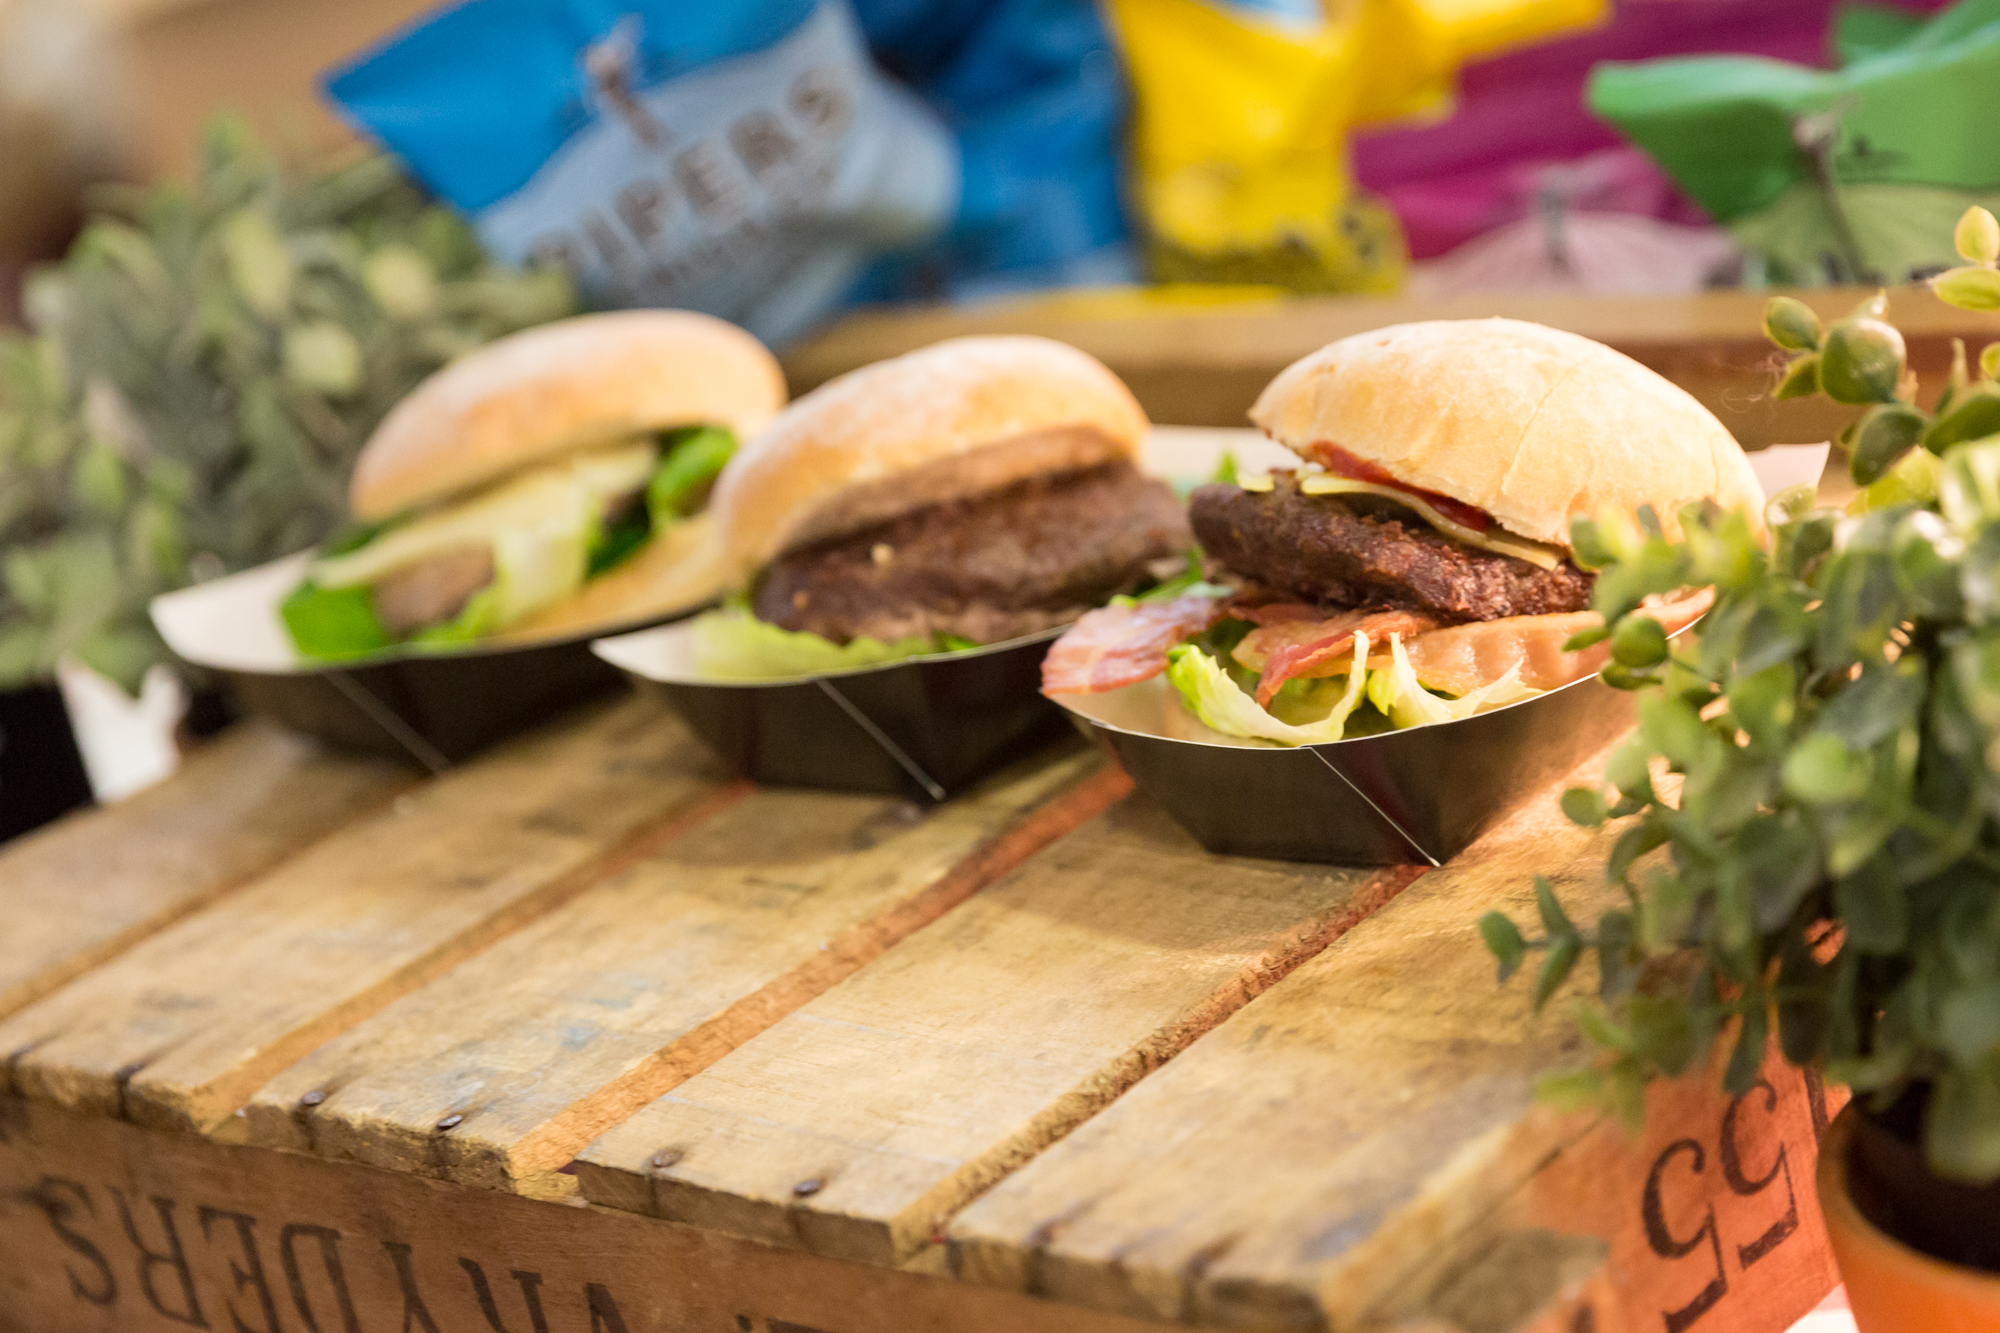 Burgers at the Destinations food and travel show